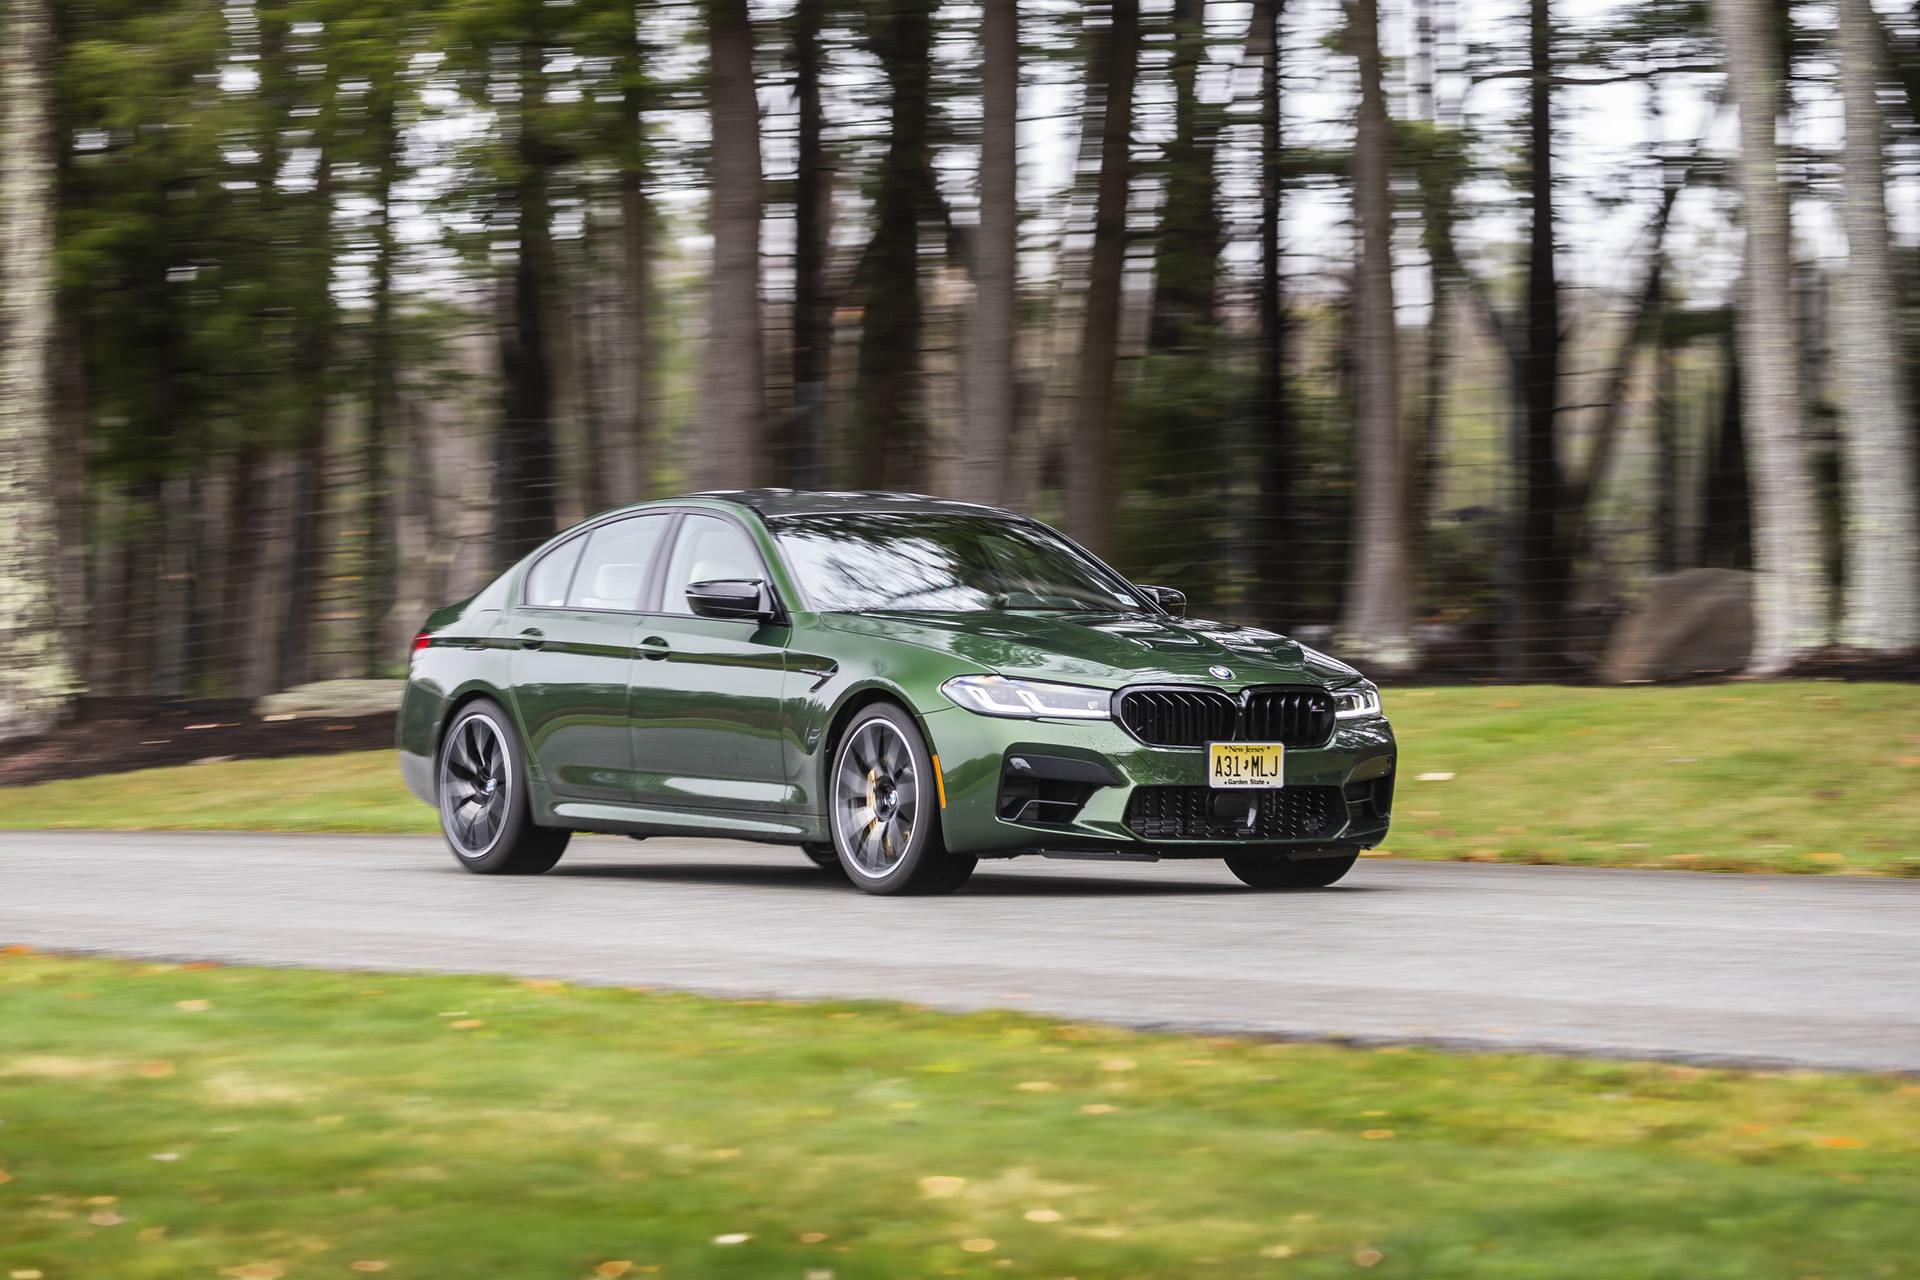 2021 Bmw M5 Facelift Gets The Verde Ermes Color From Bmw Individual